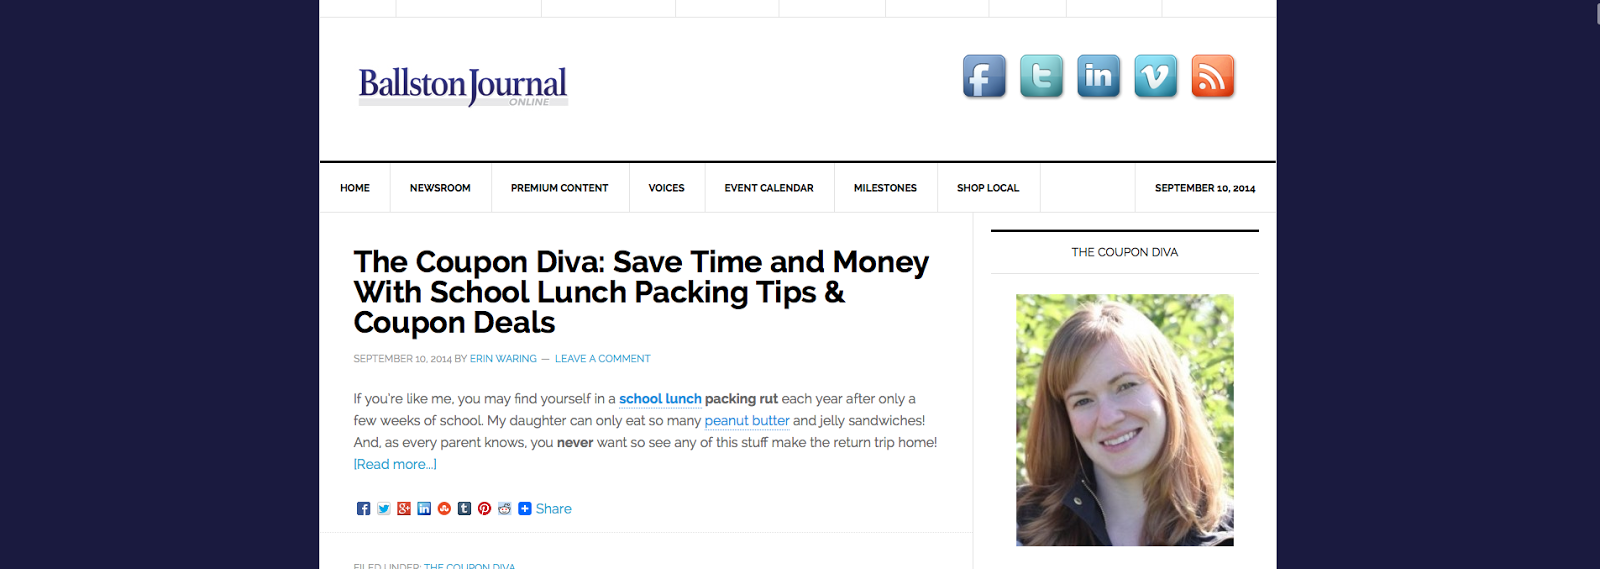 http://theballstonjournal.com/2014/09/10/coupon-diva-save-time-money-school-lunch-packing-tips-coupon-deals/